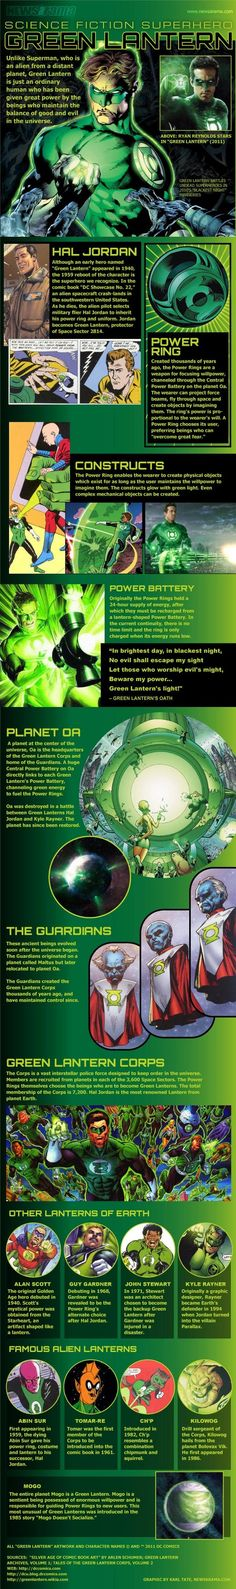 dc comics infographic | Infographic overview of DC Comics' Green Lantern mythos. Graphic by ...